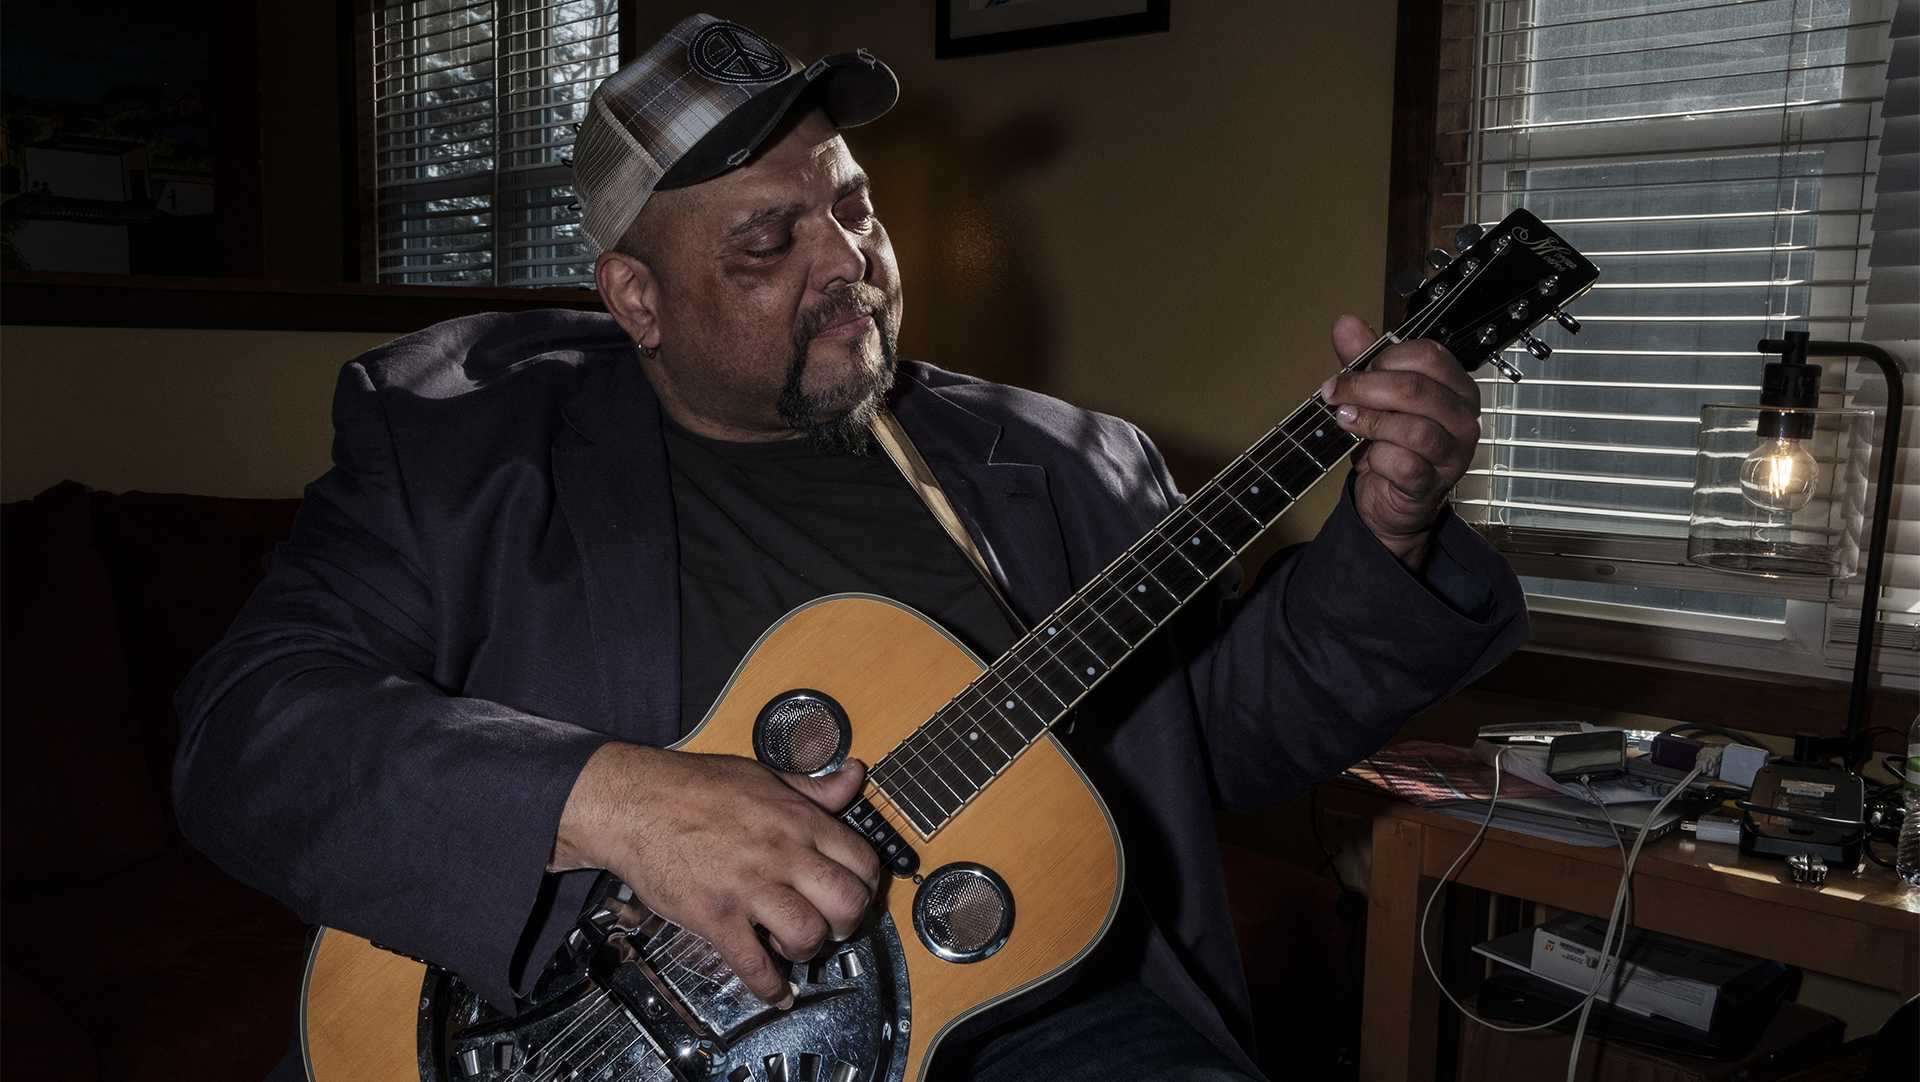 Local musician wins International Blues Challenge after 20 years of performing